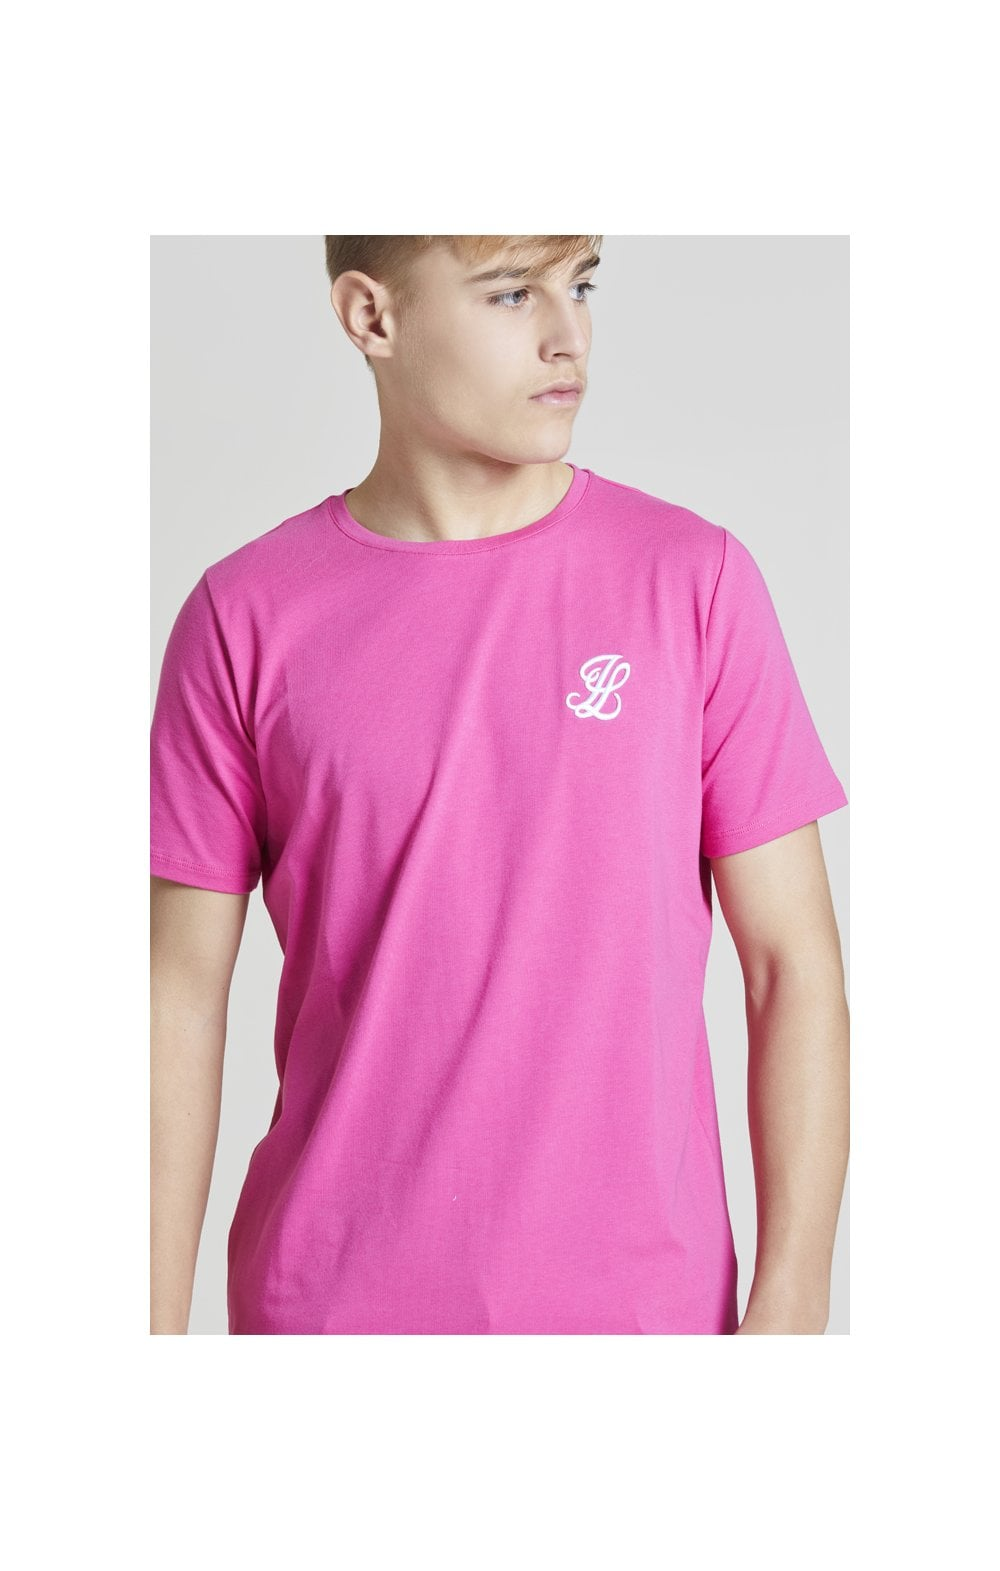 Load image into Gallery viewer, Illusive London Core Tee - Pink